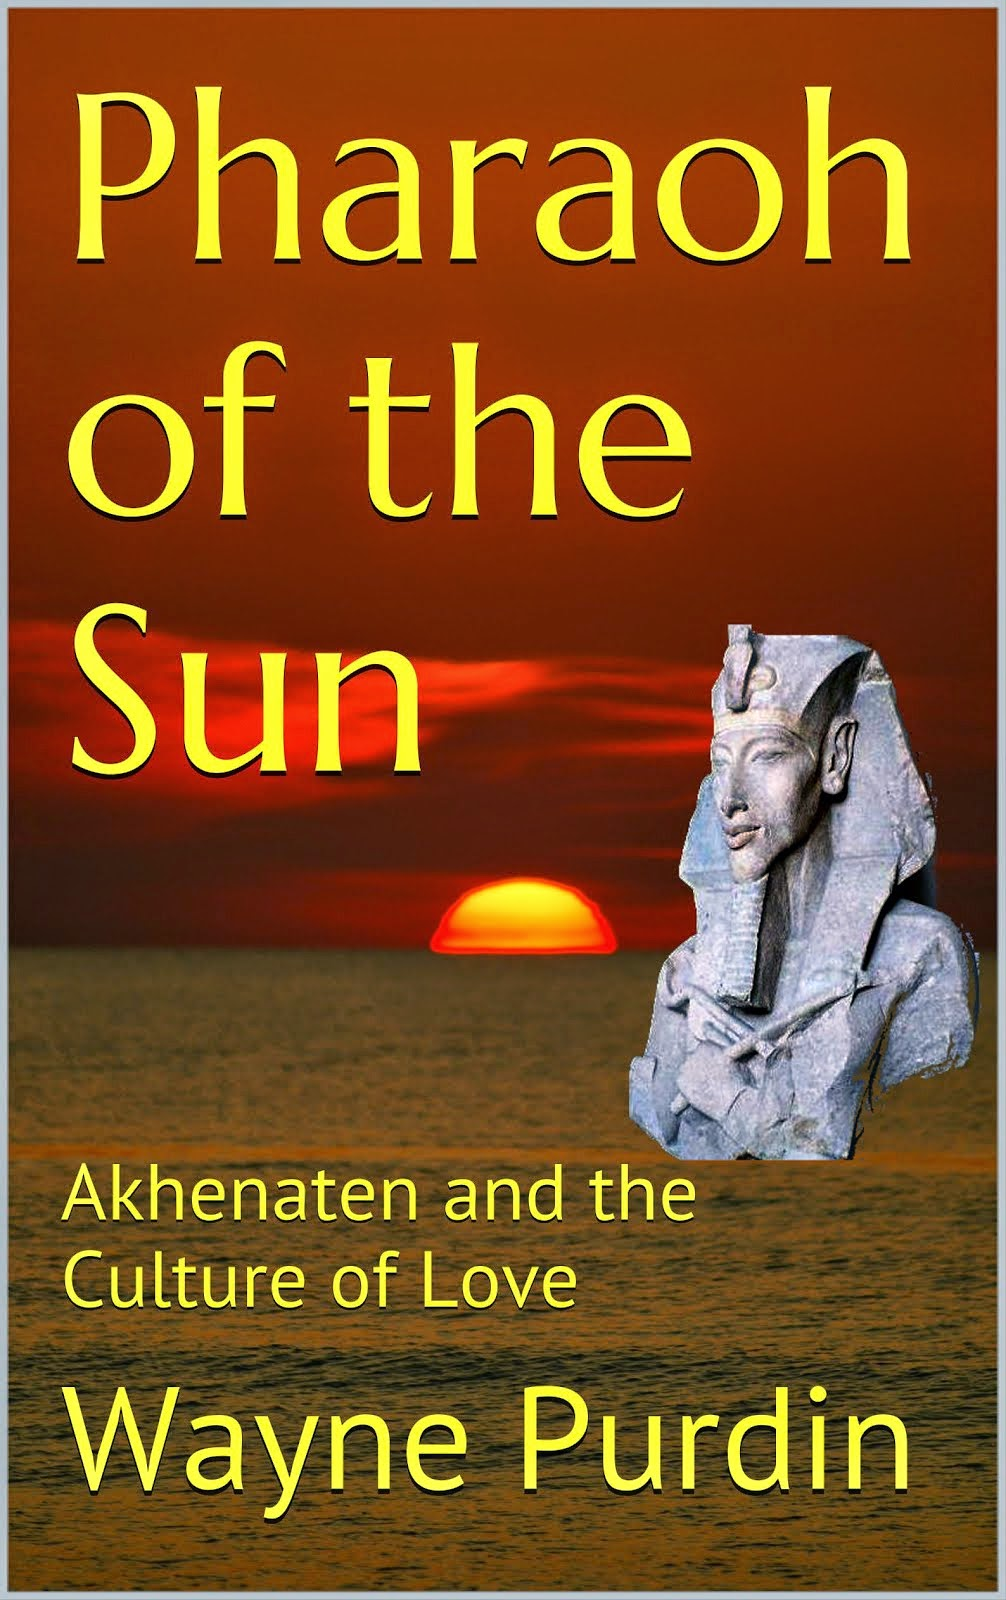 Pharaoh of the Sun